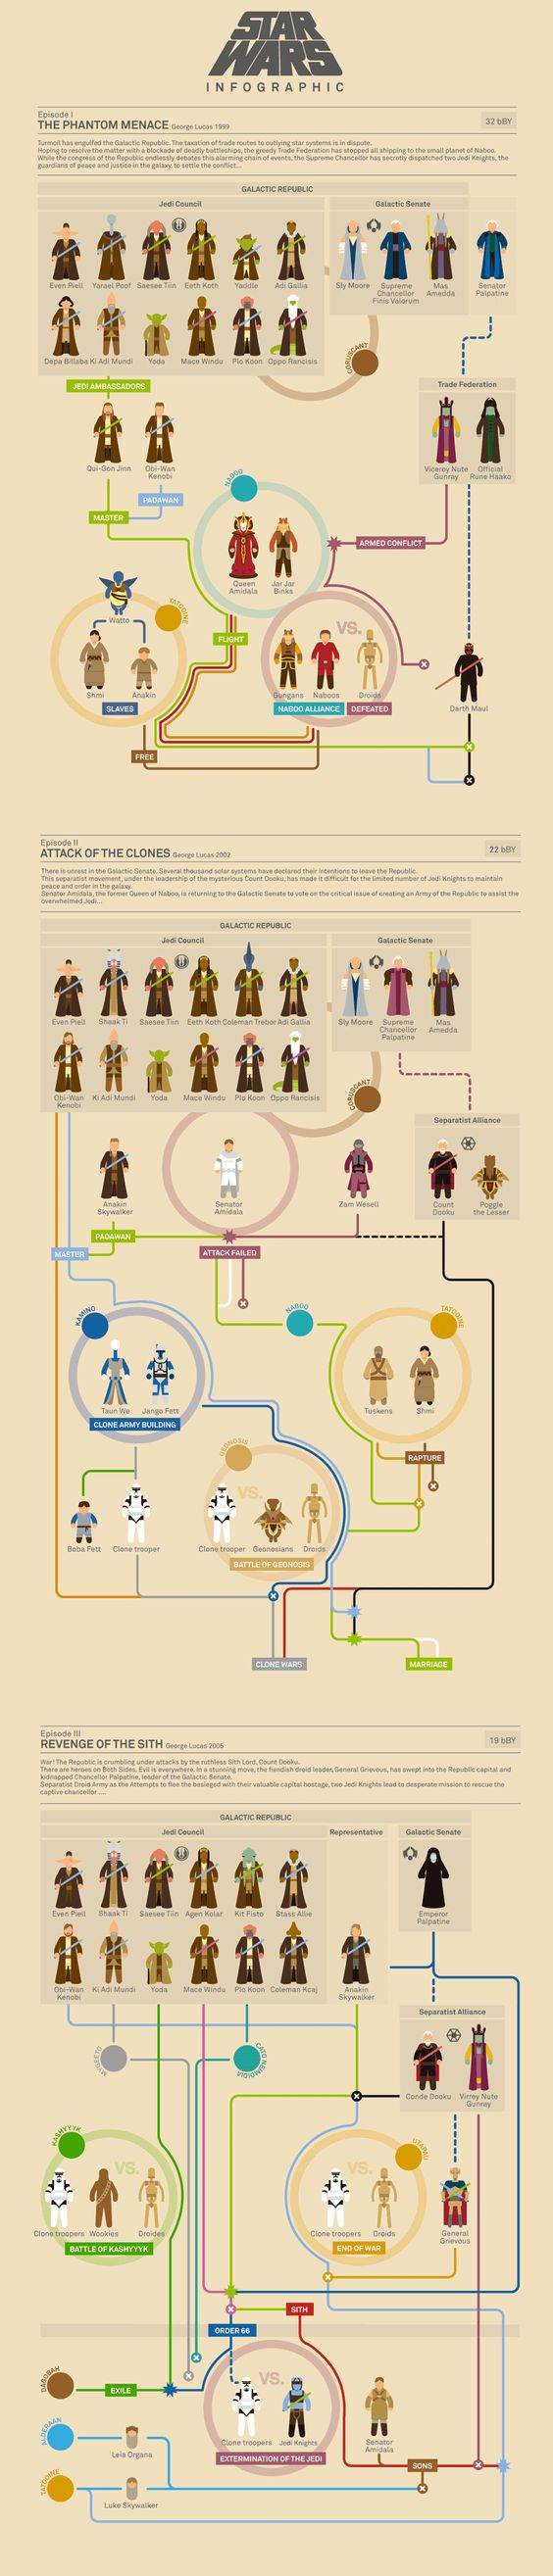 Star Wars Infographic Episode I - II - III  Follow @DaisyRidleyFan on twitter for all things Star Wars: